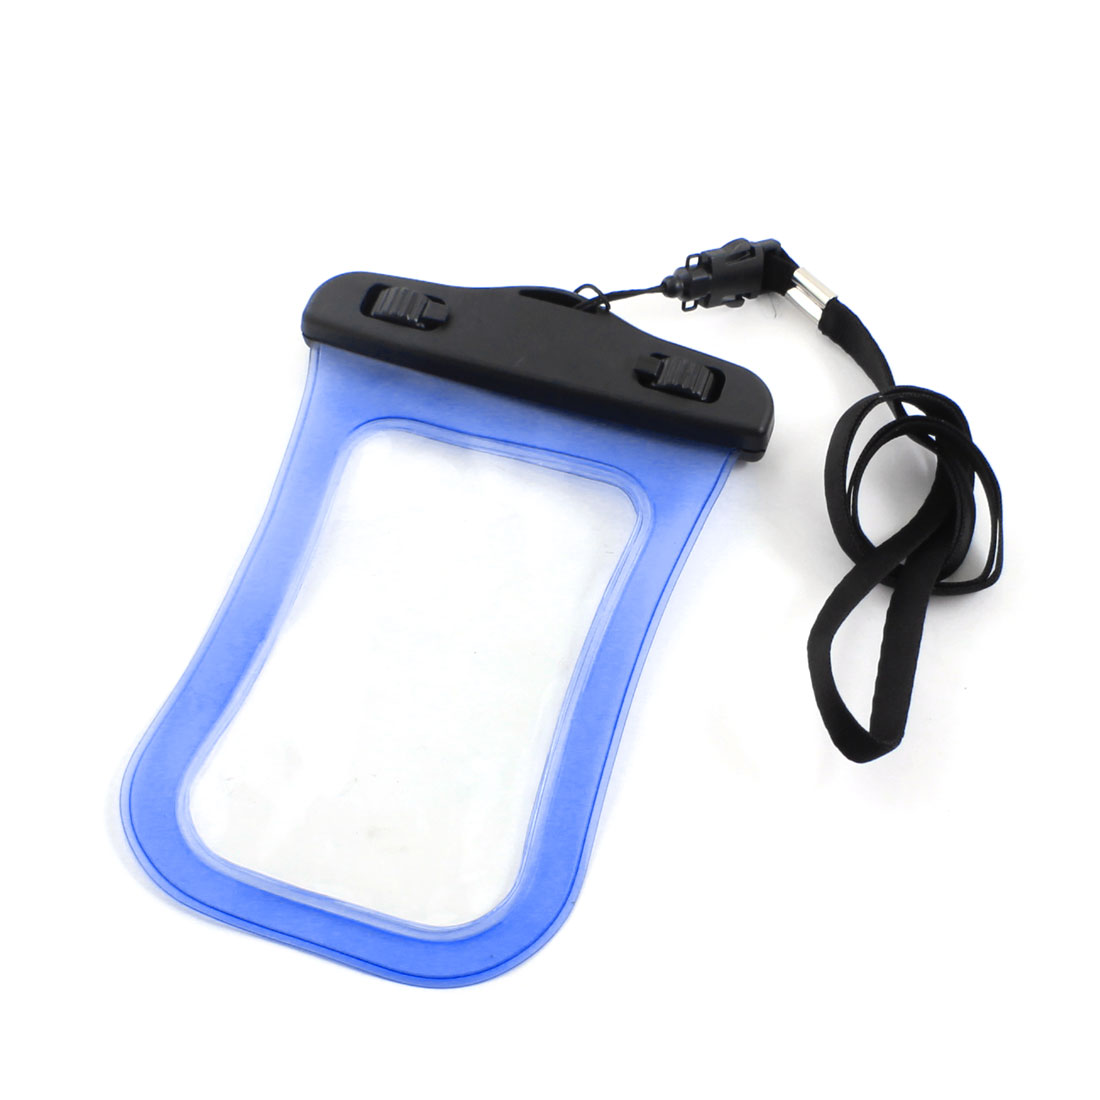 Clear Blue Waterproof Phone Smartphone Pouch Dry Bag Case w Neck Strap Armband